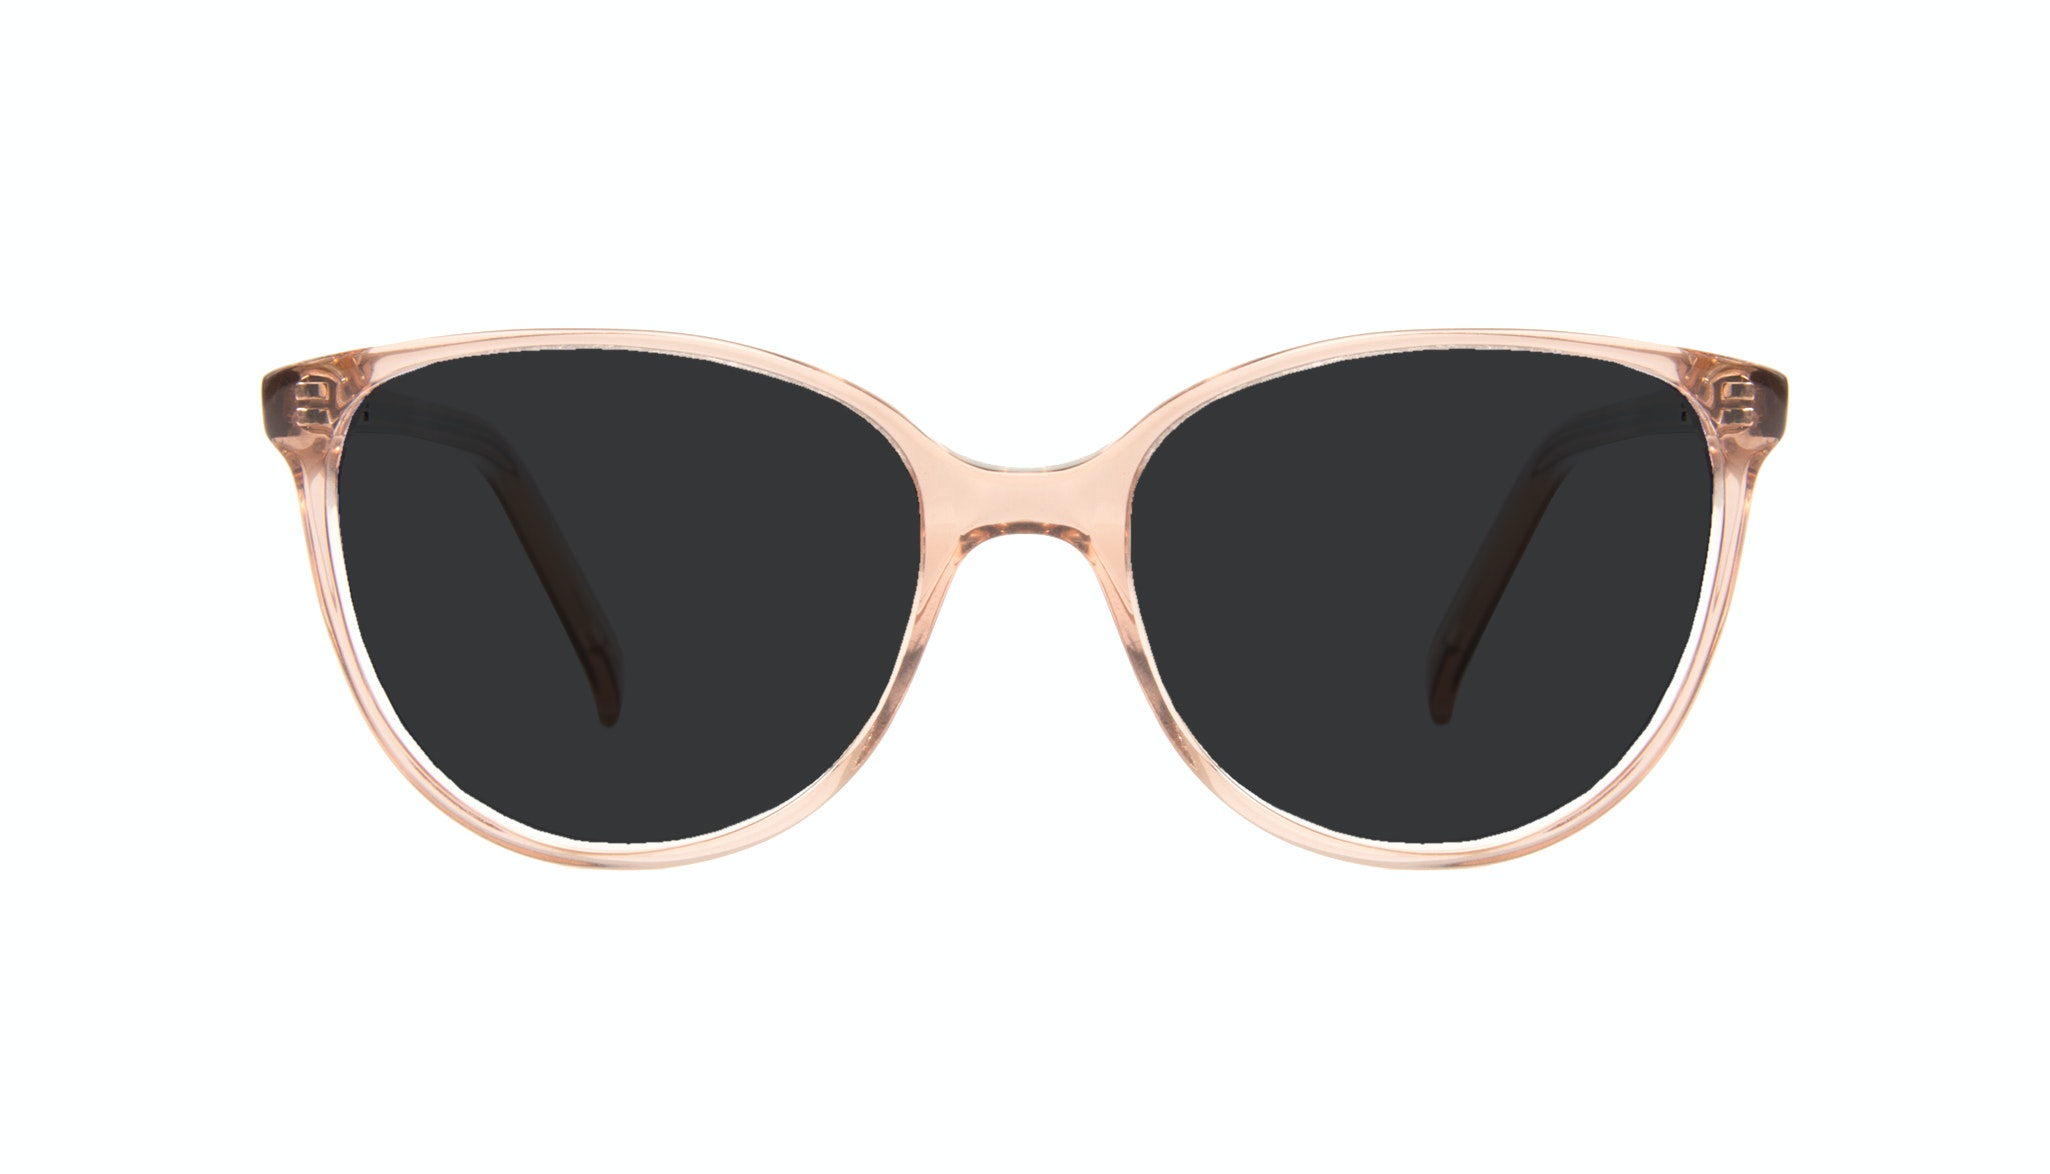 Affordable Fashion Glasses Round Sunglasses Women Imagine Petite Rose Front